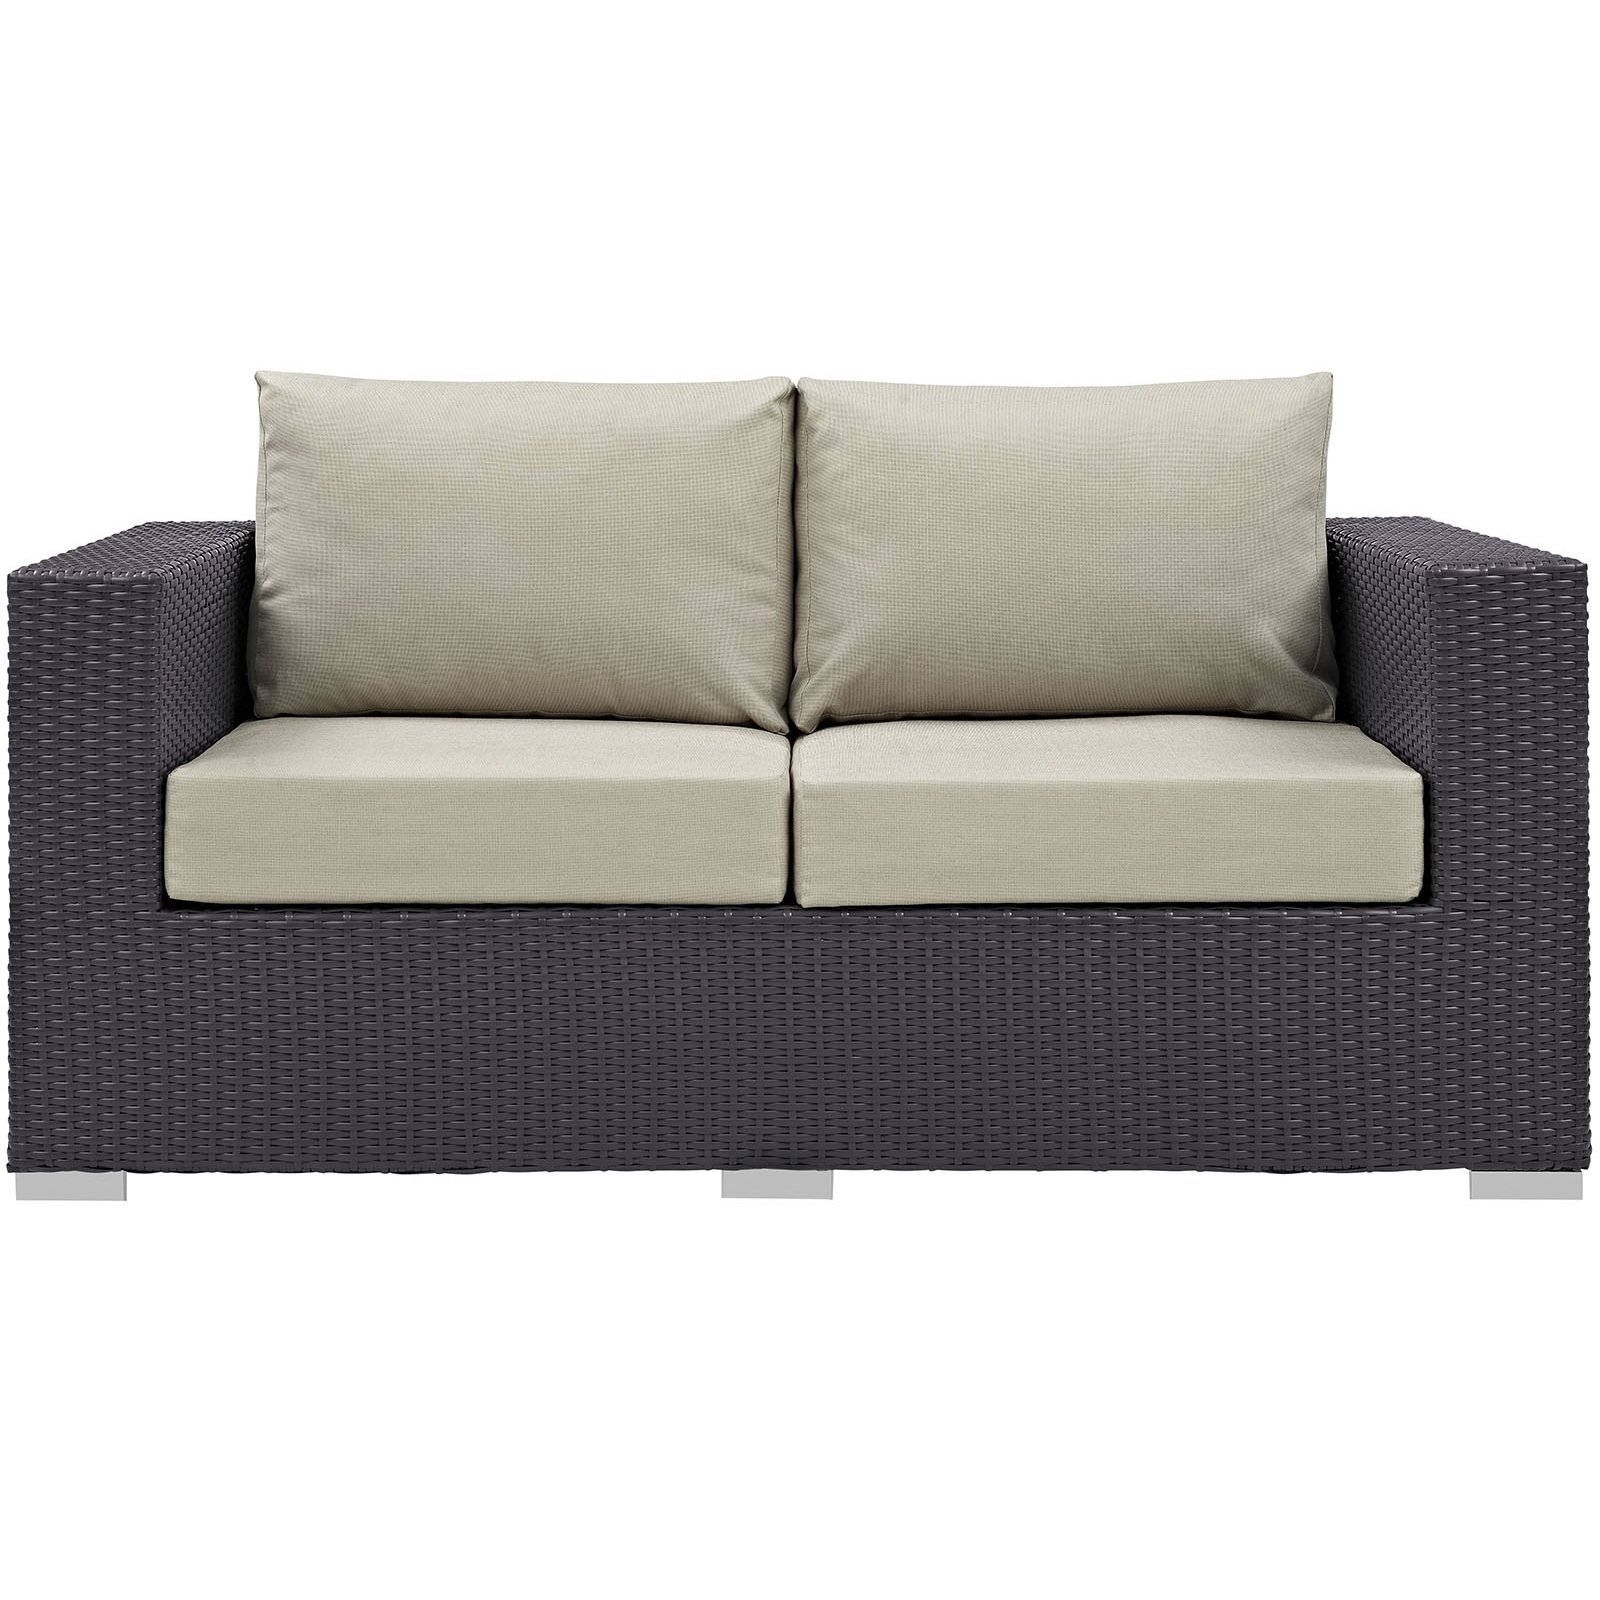 Most Popular Loggins Loveseats With Cushions Throughout Modway Convene Wicker Outdoor Loveseat White (View 14 of 20)